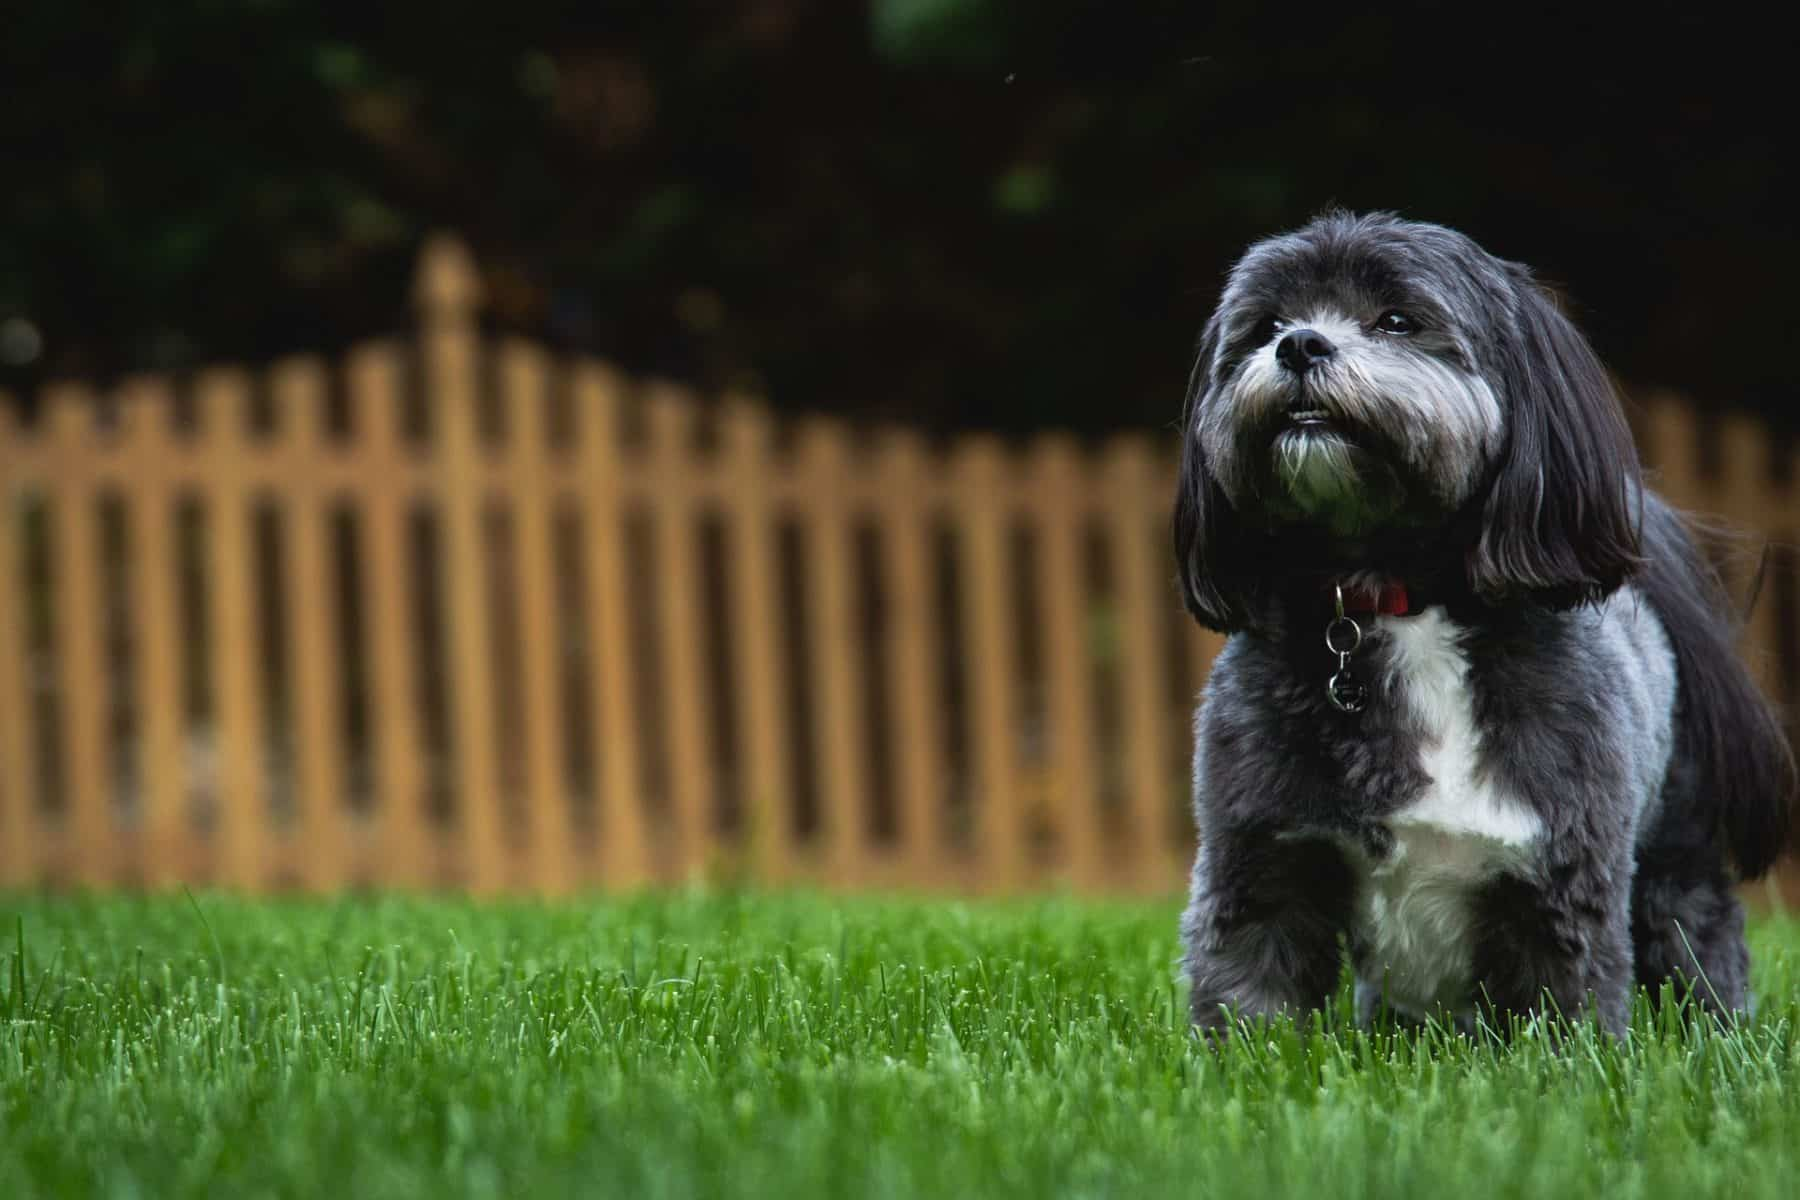 The Top 5 Shih Tzu Haircut Styles The Dog People By Rover Com